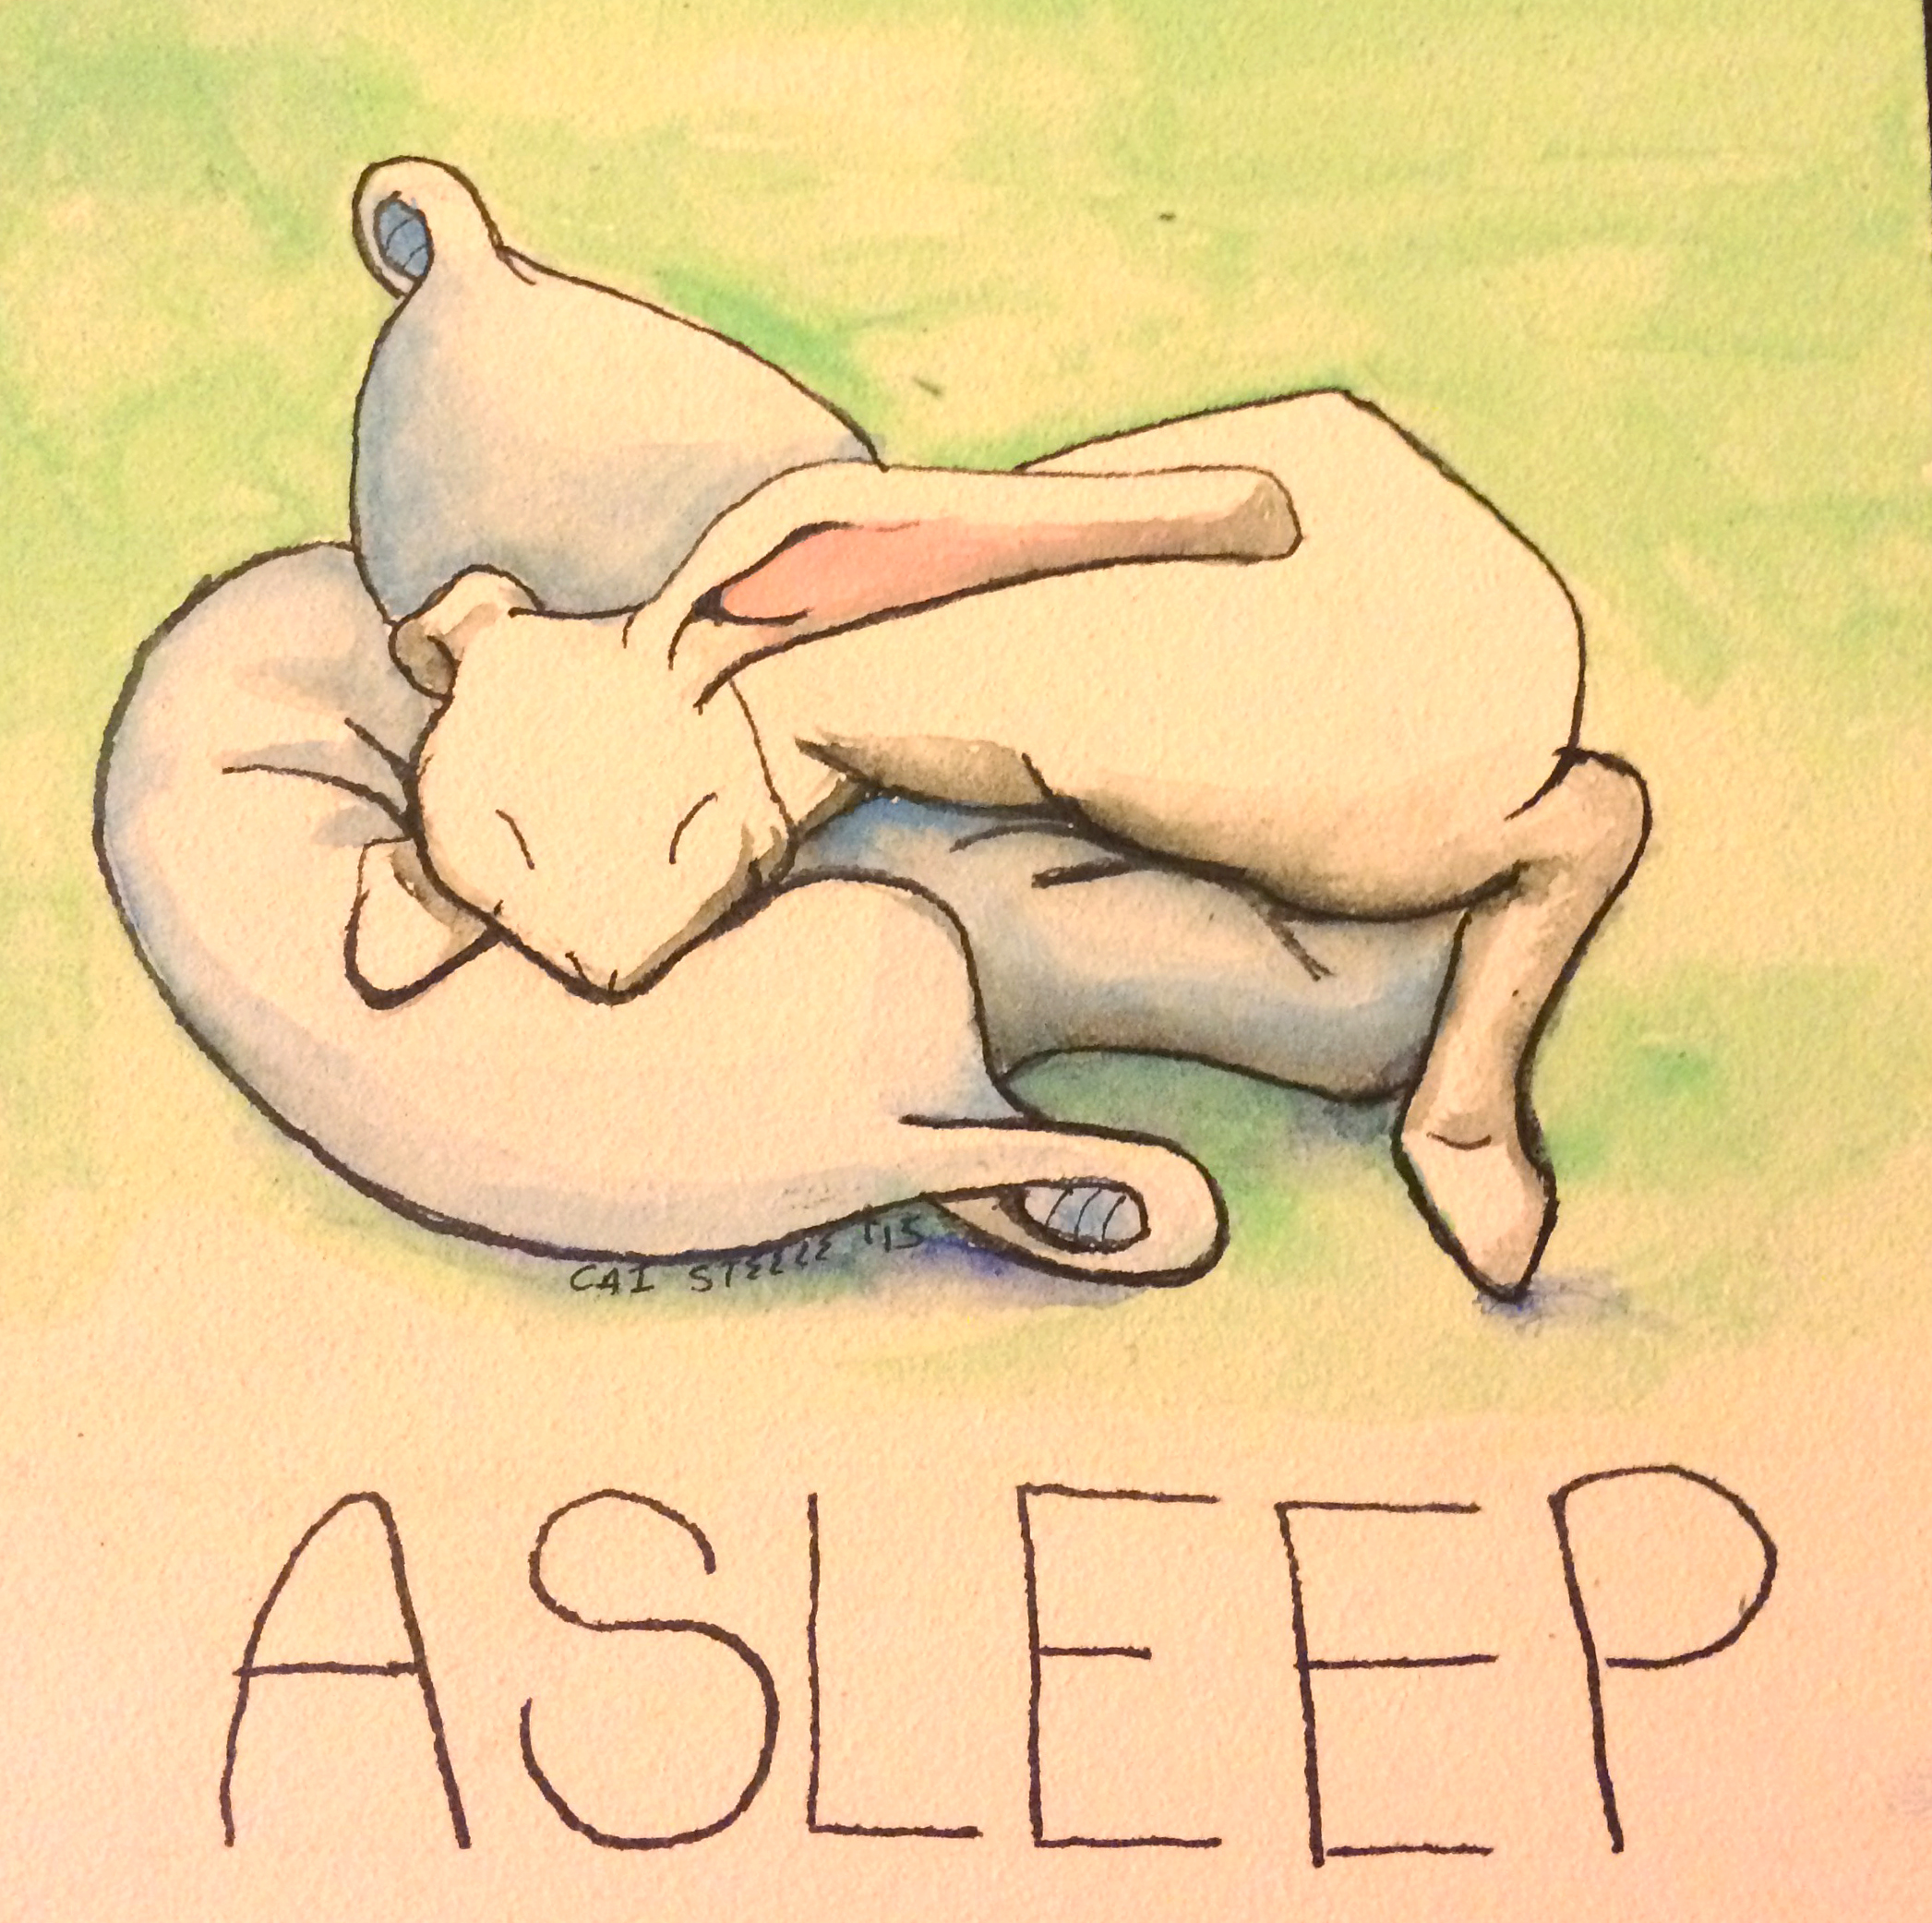 watercolor cartoon bunny sleeping on pillows with the text ASLEEP at the bottom